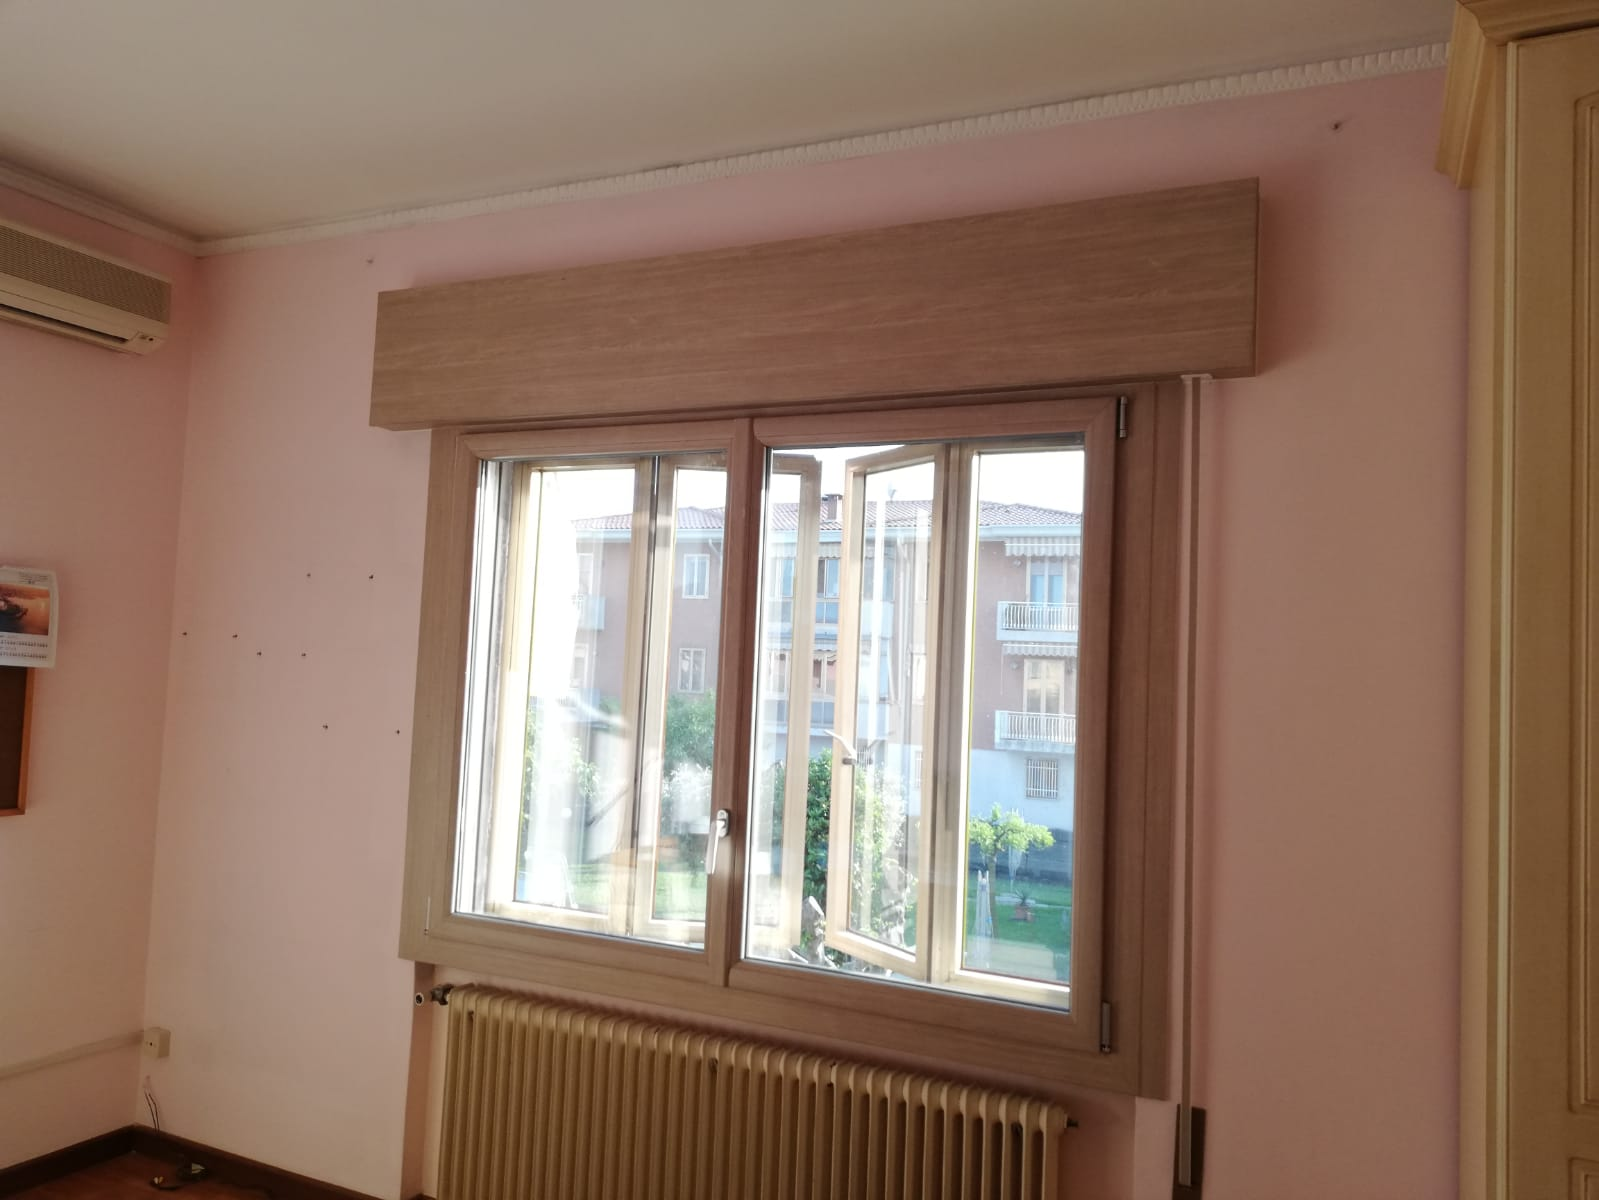 prolux rovere sbiancato